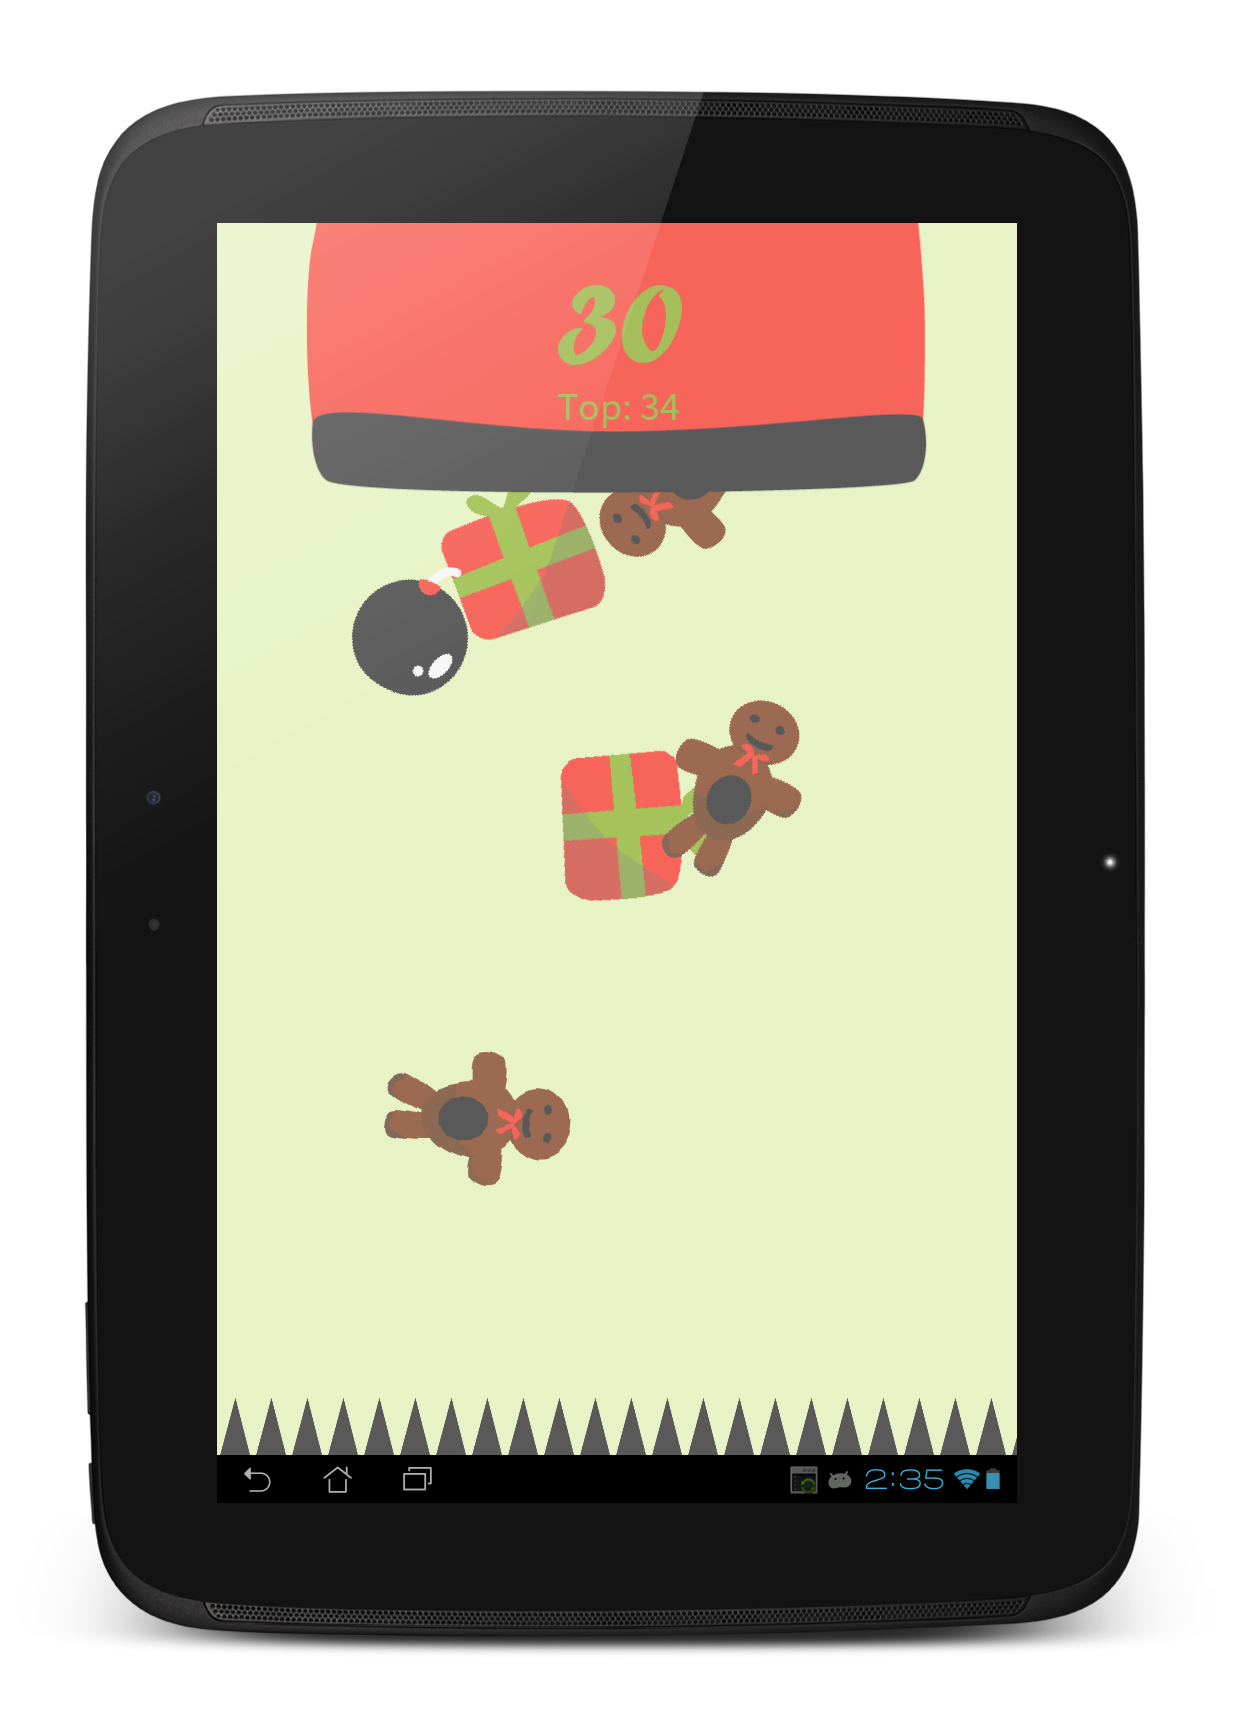 Santa S Gifts A Christmas Android Arcade Game By